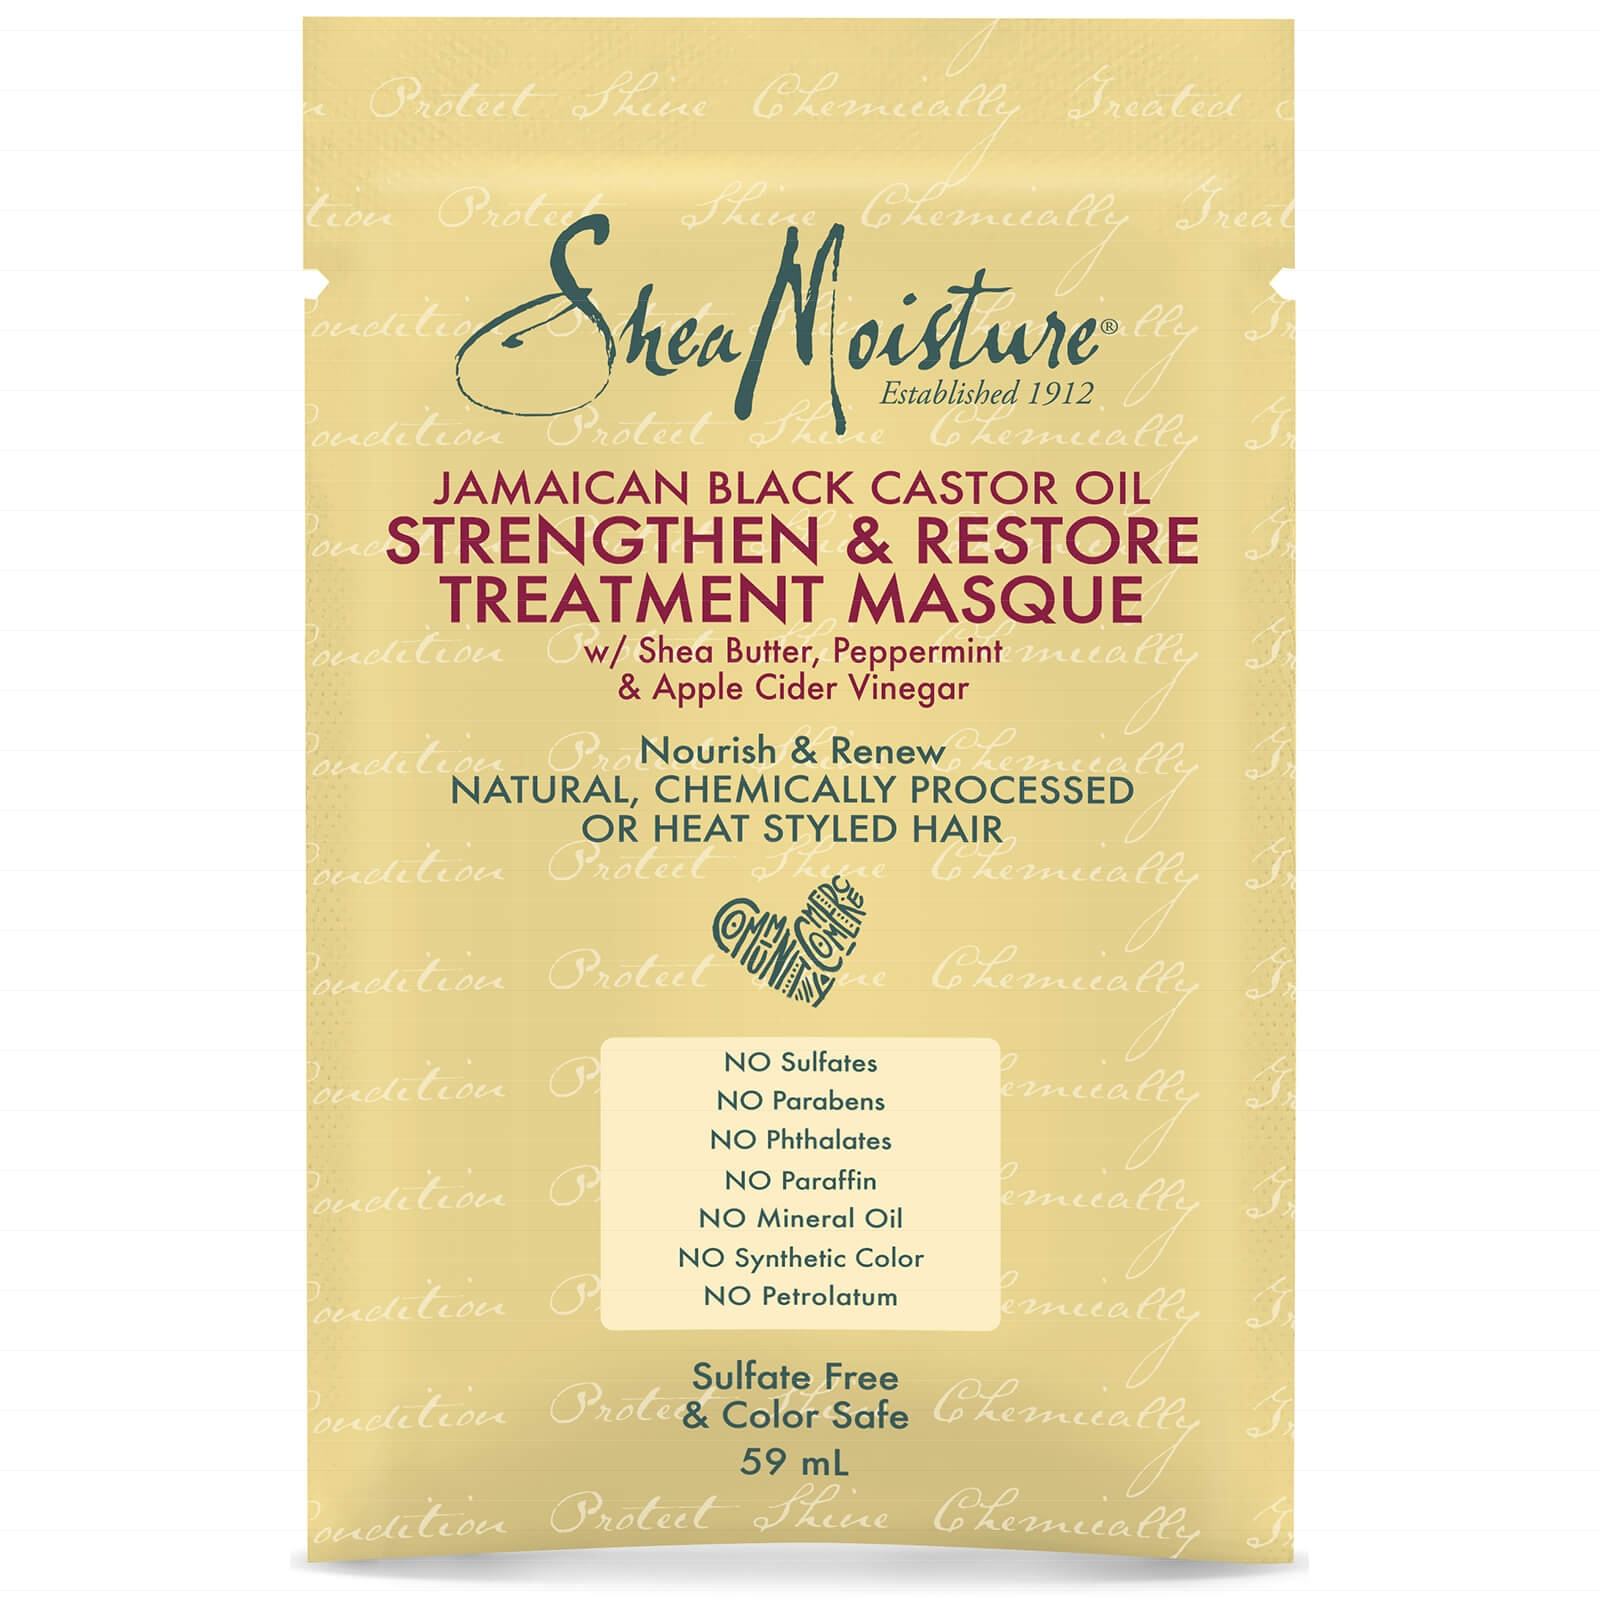 Shea Moisture Jamaican Black Castor Oil Treatment Masque - 59 ml